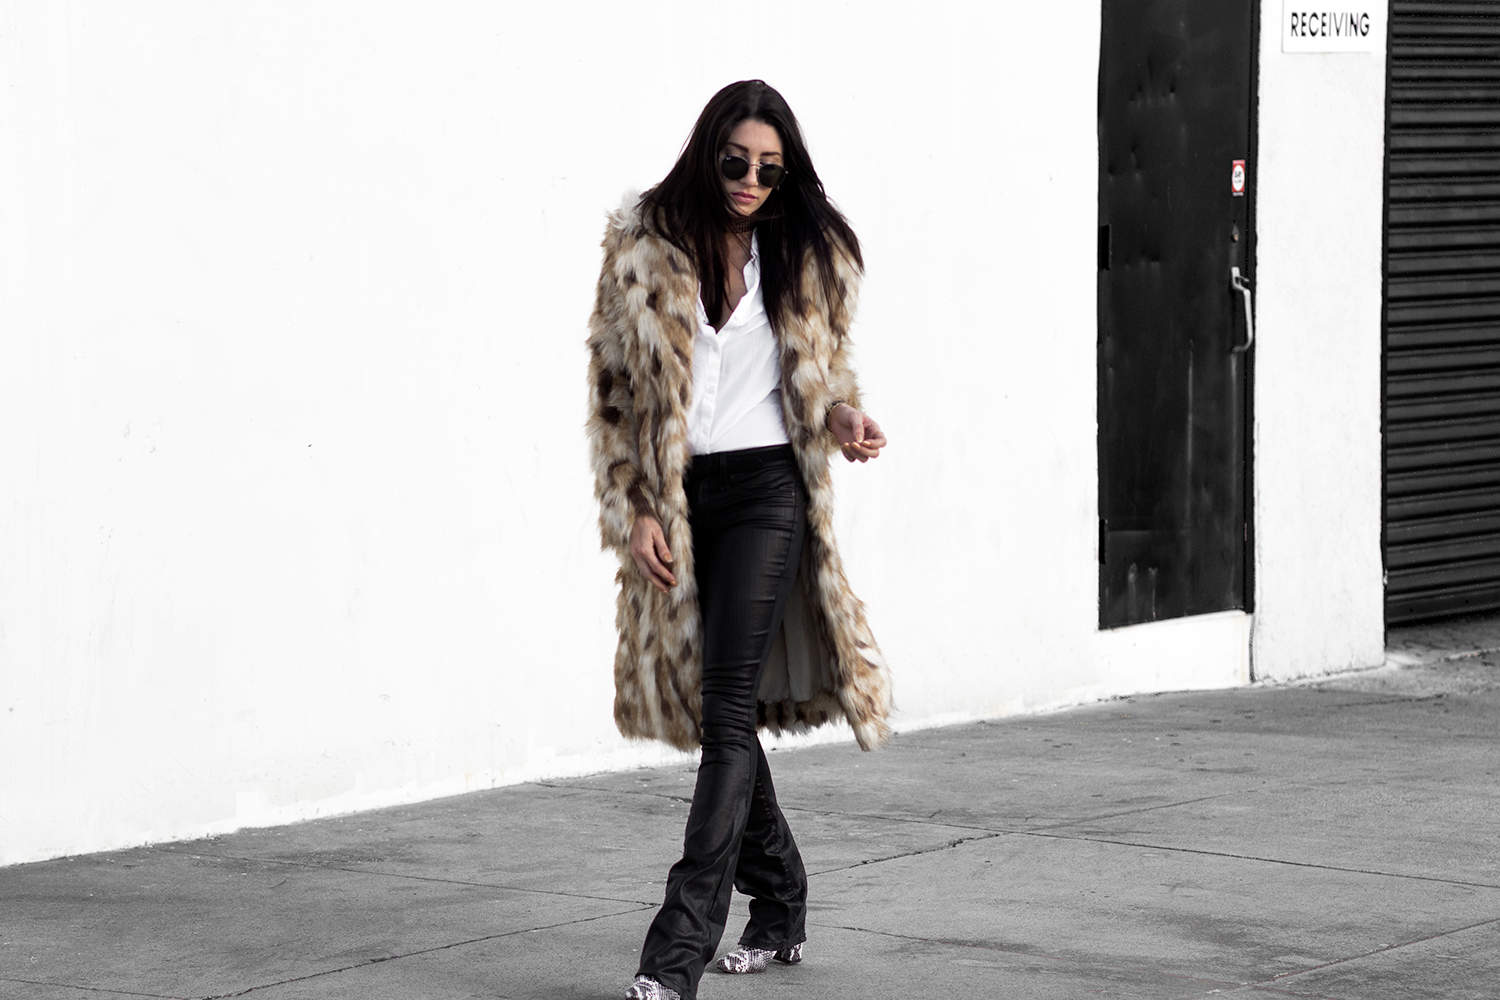 fashionlush, Countdown to 2017 with Cluse, winter street style